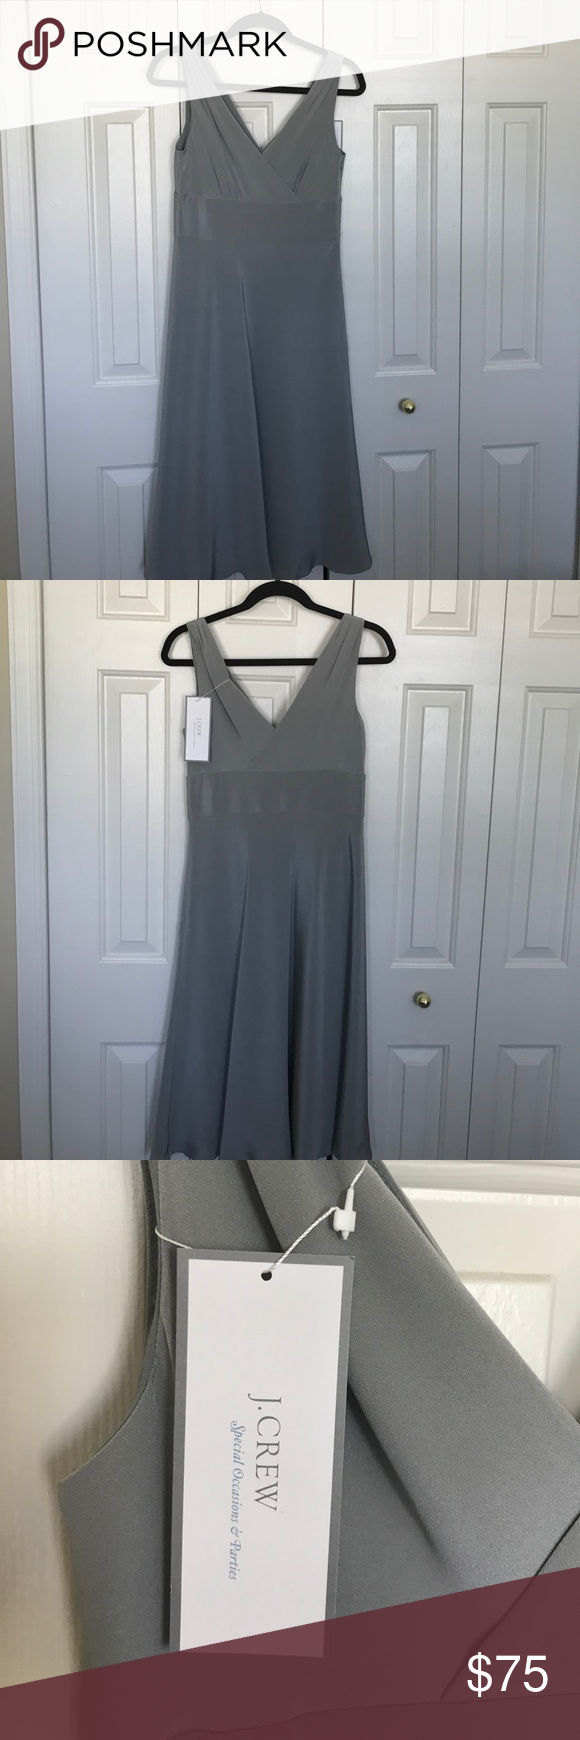 Cocktail Dress Cute special occasion dress. Make me an offer. J. Crew Dresses Midi